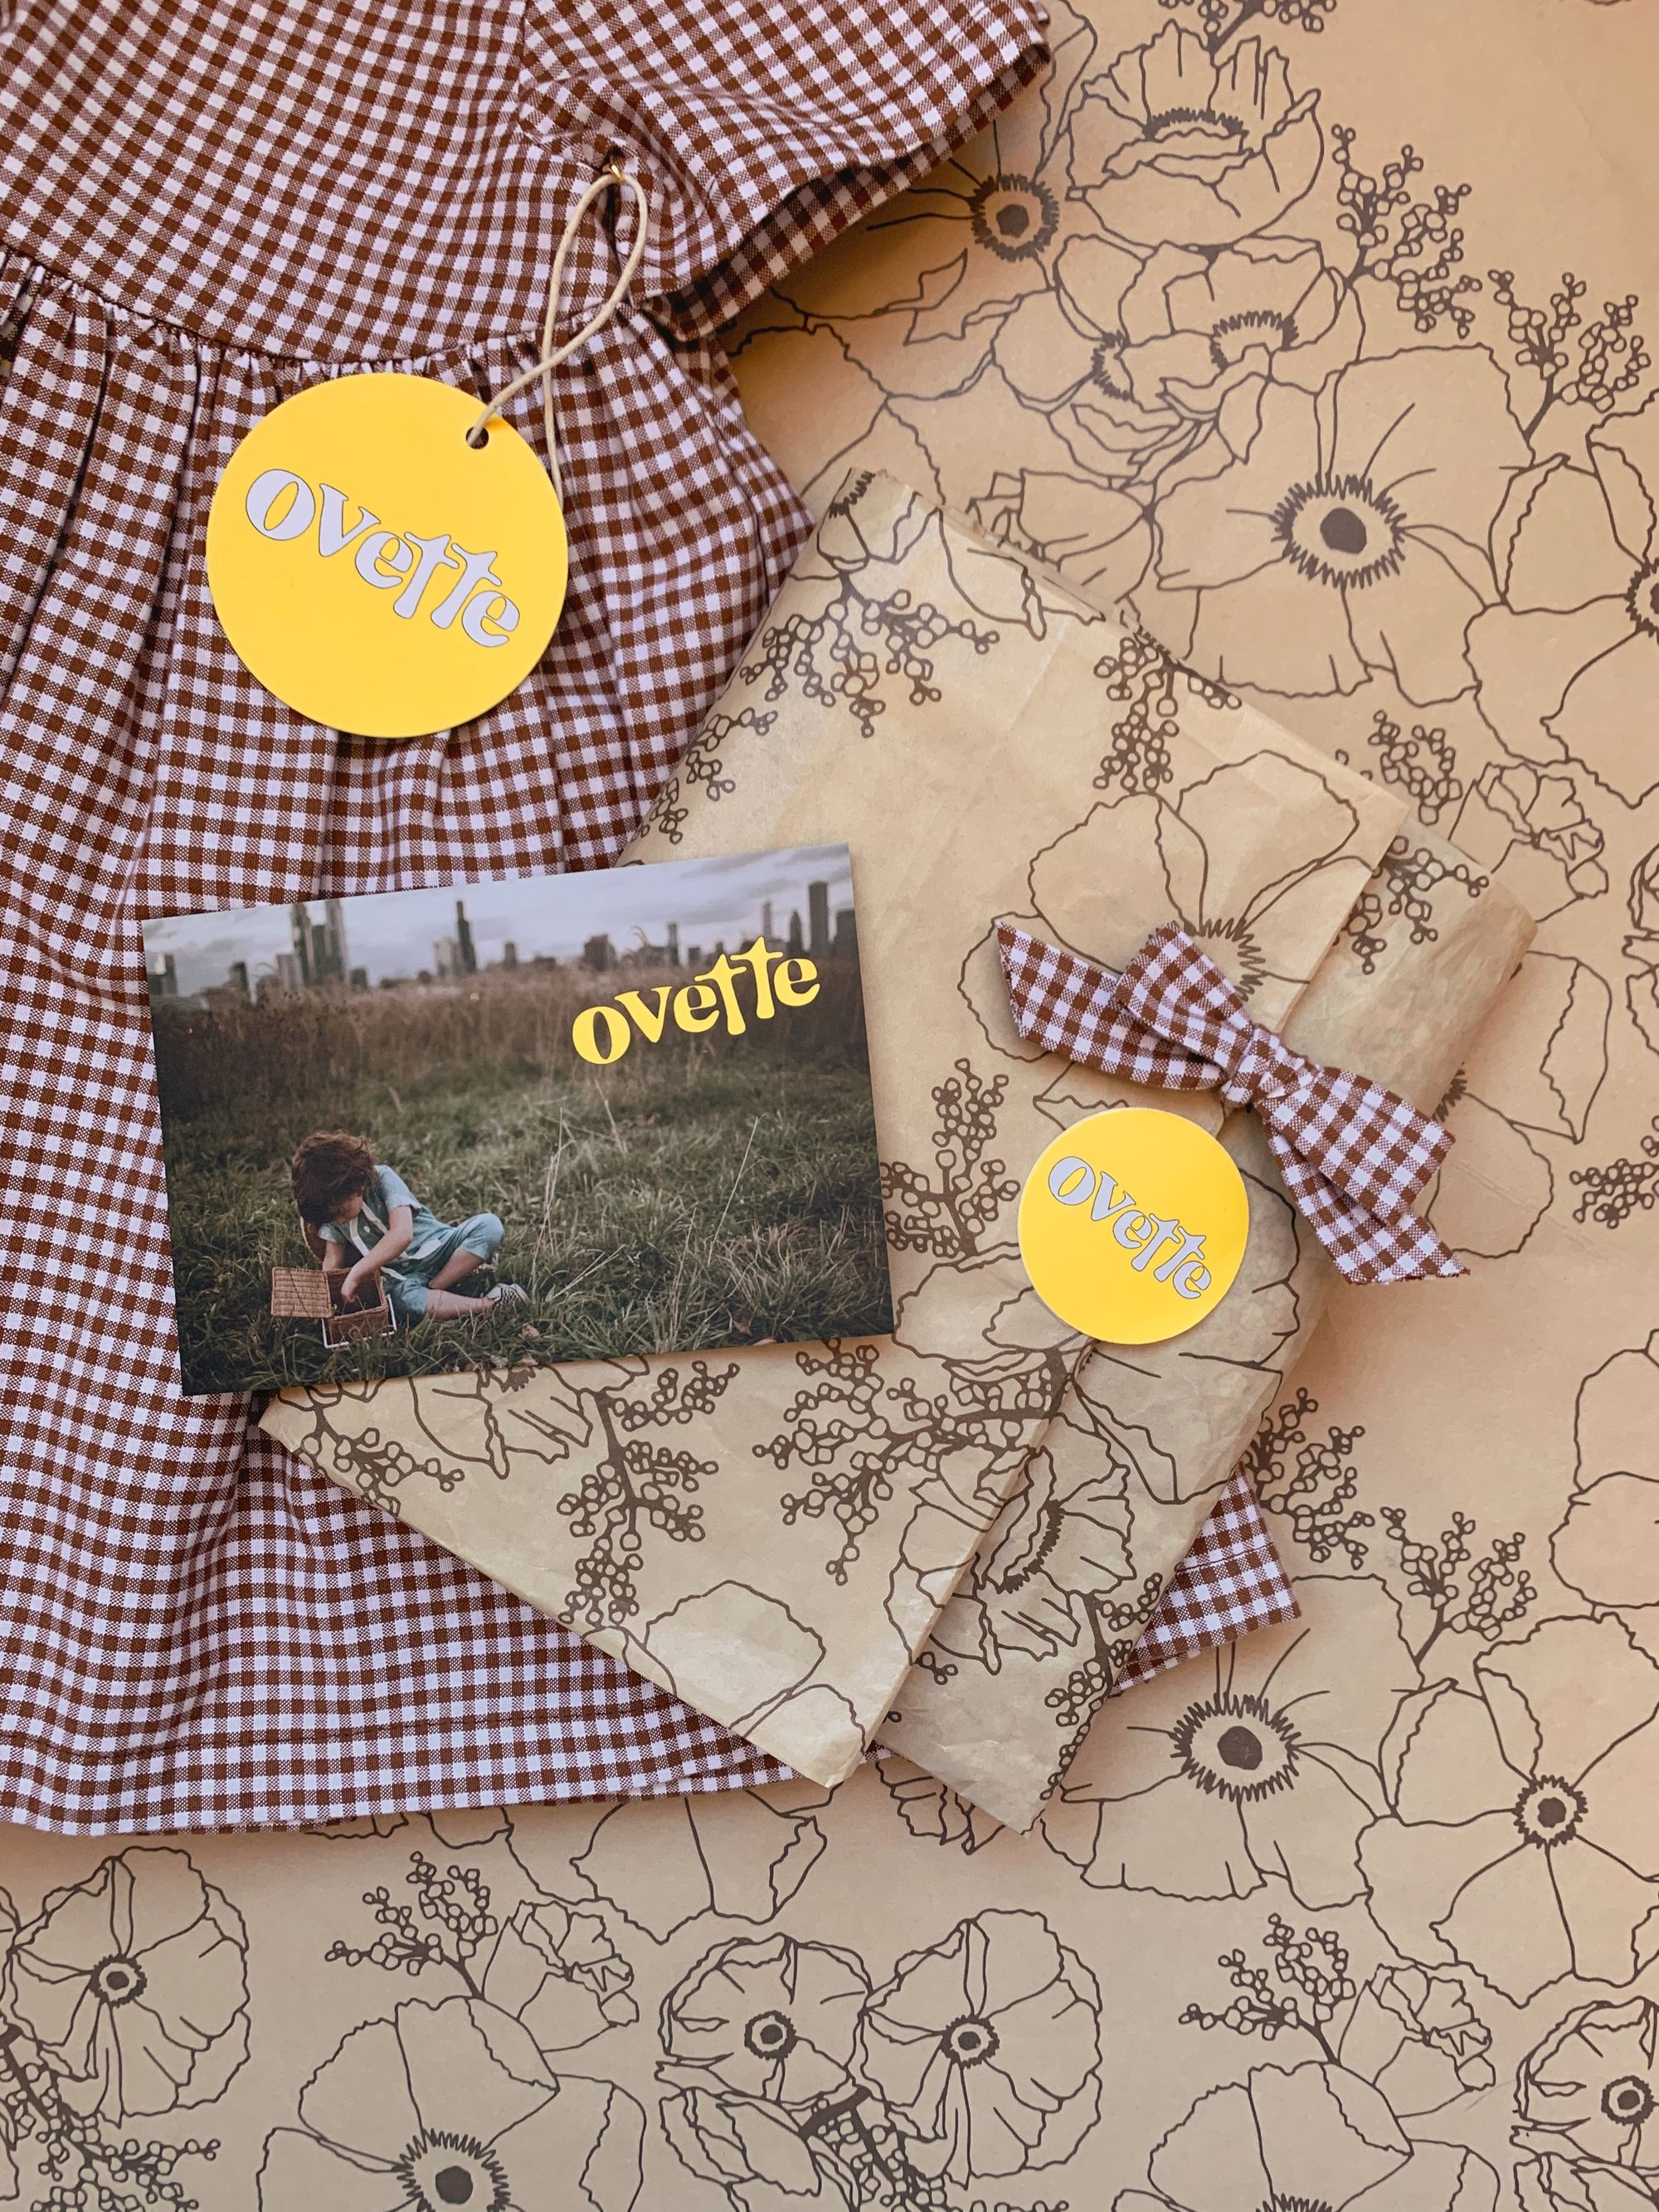 Ovette: Sparking Adventure with Nostalgic Childrenswear